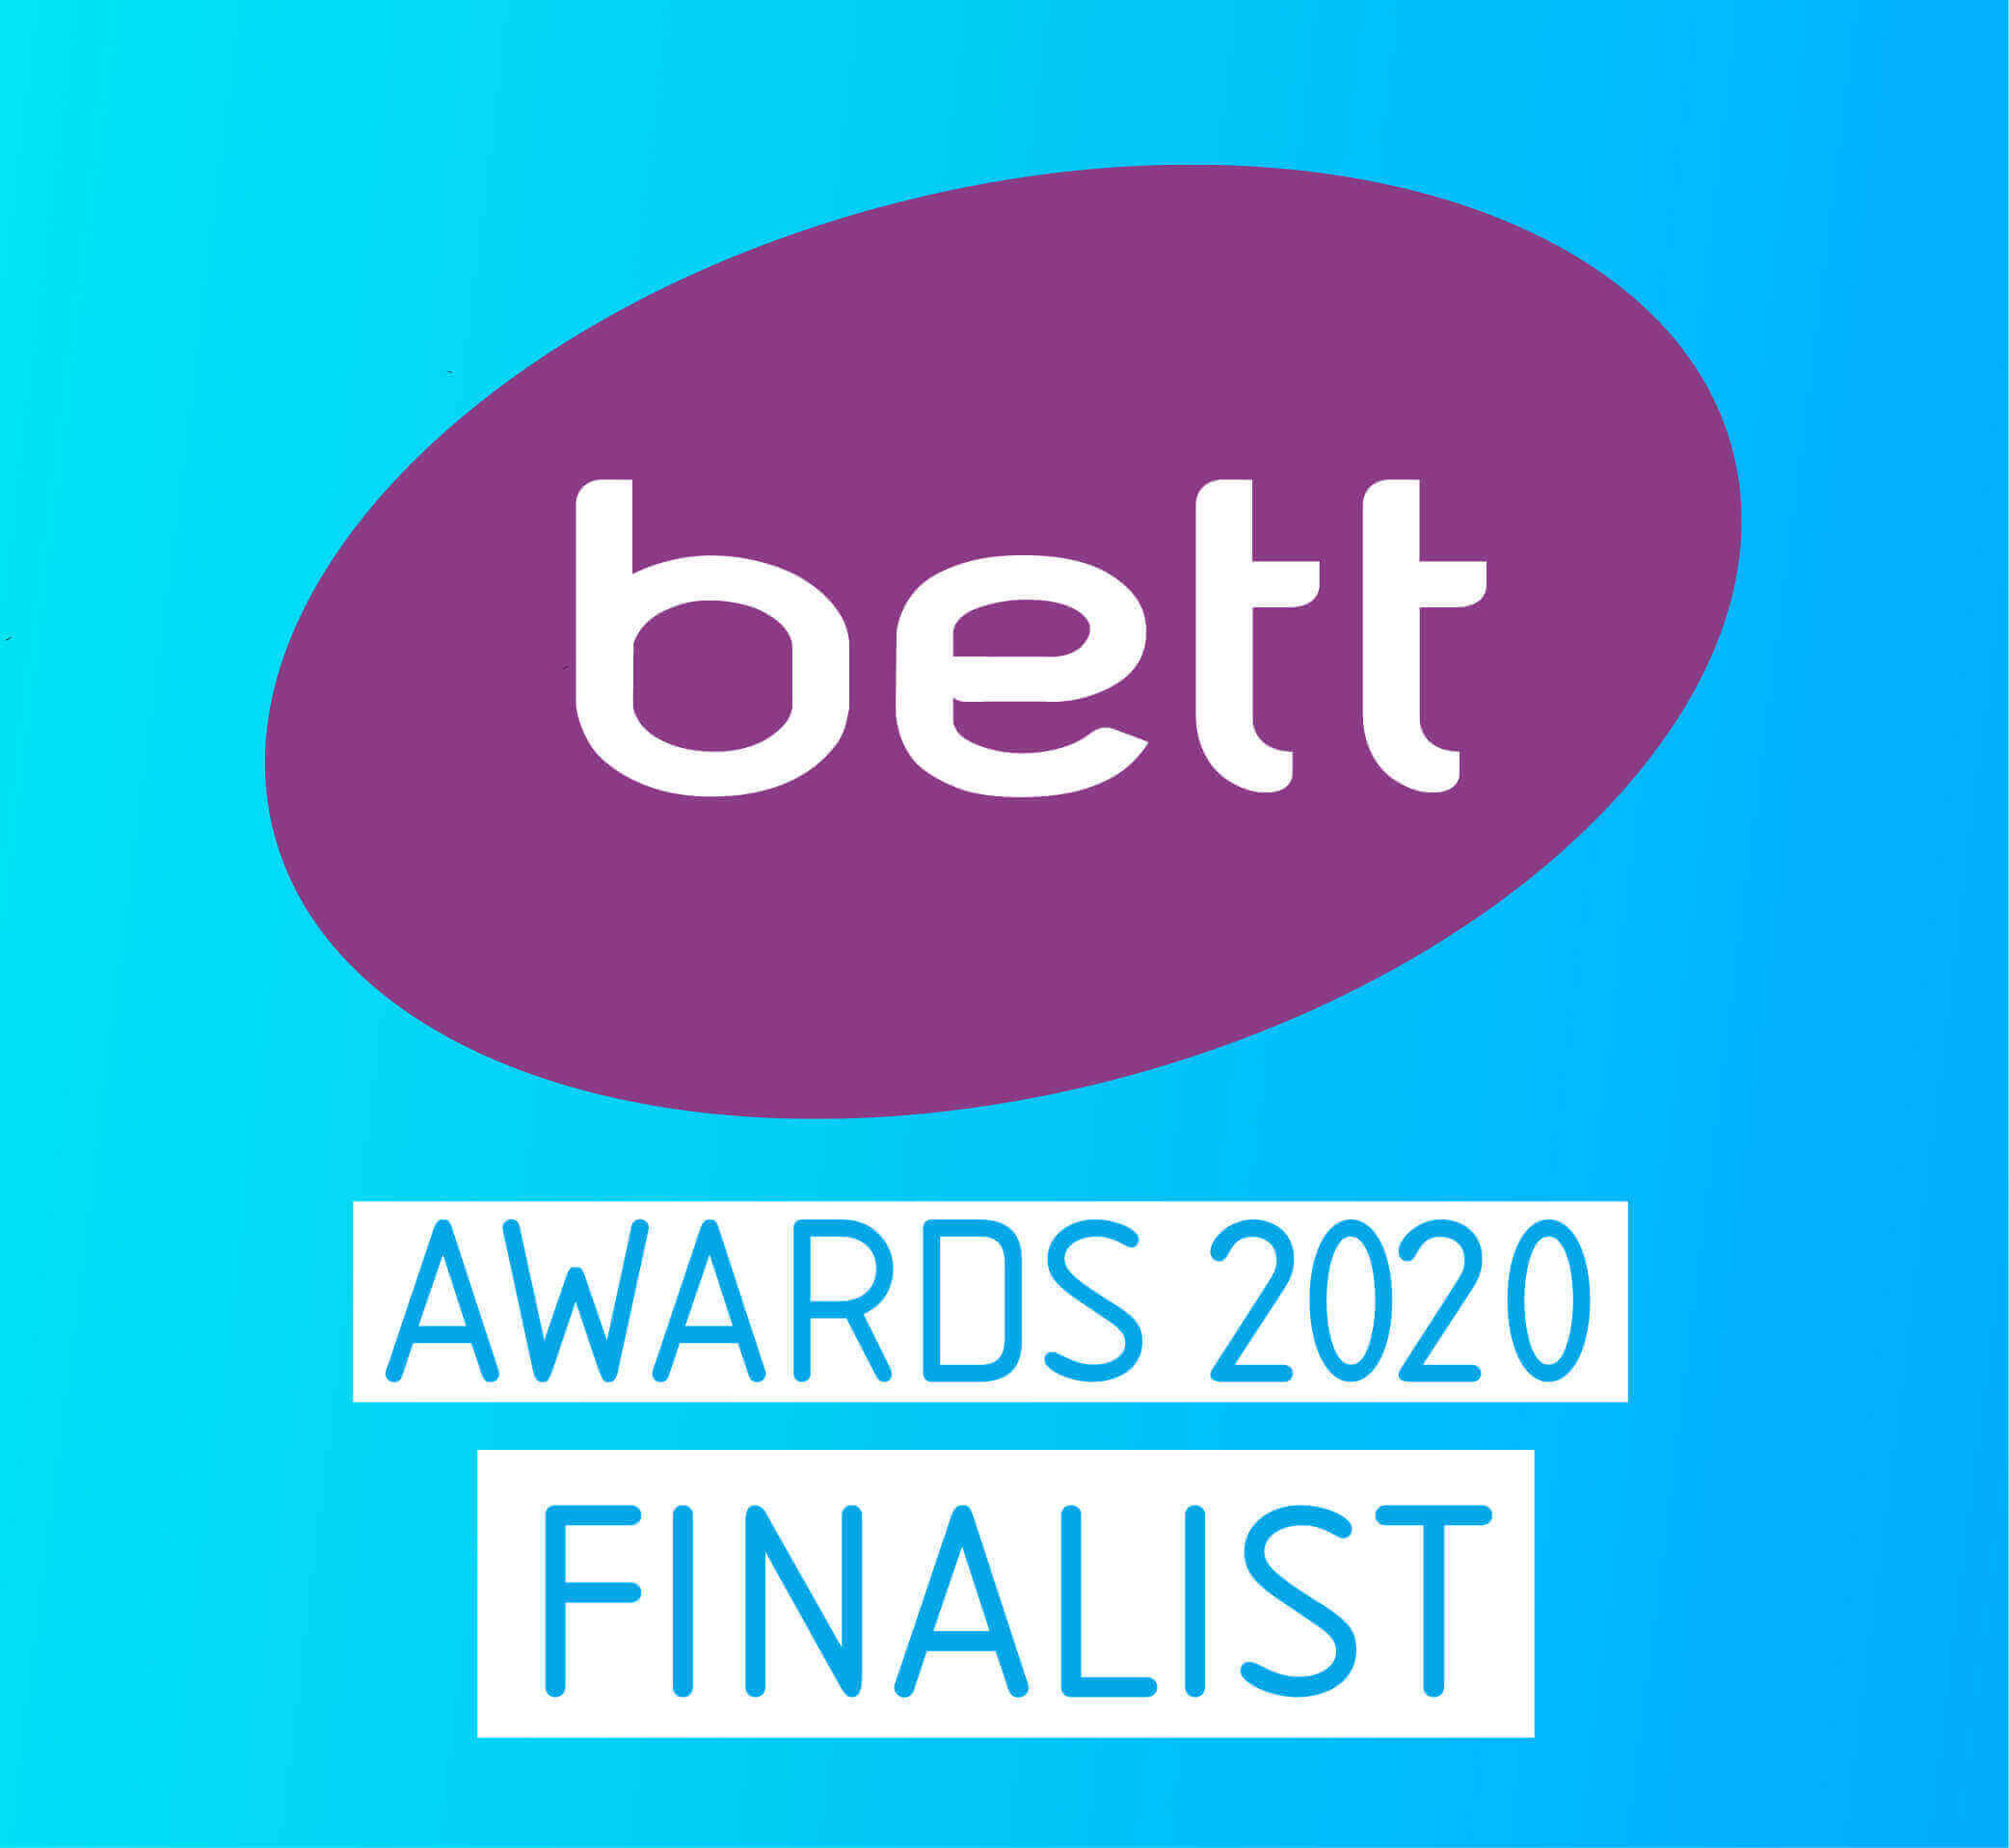 TSN Shortlisted for 2020 Bett Award